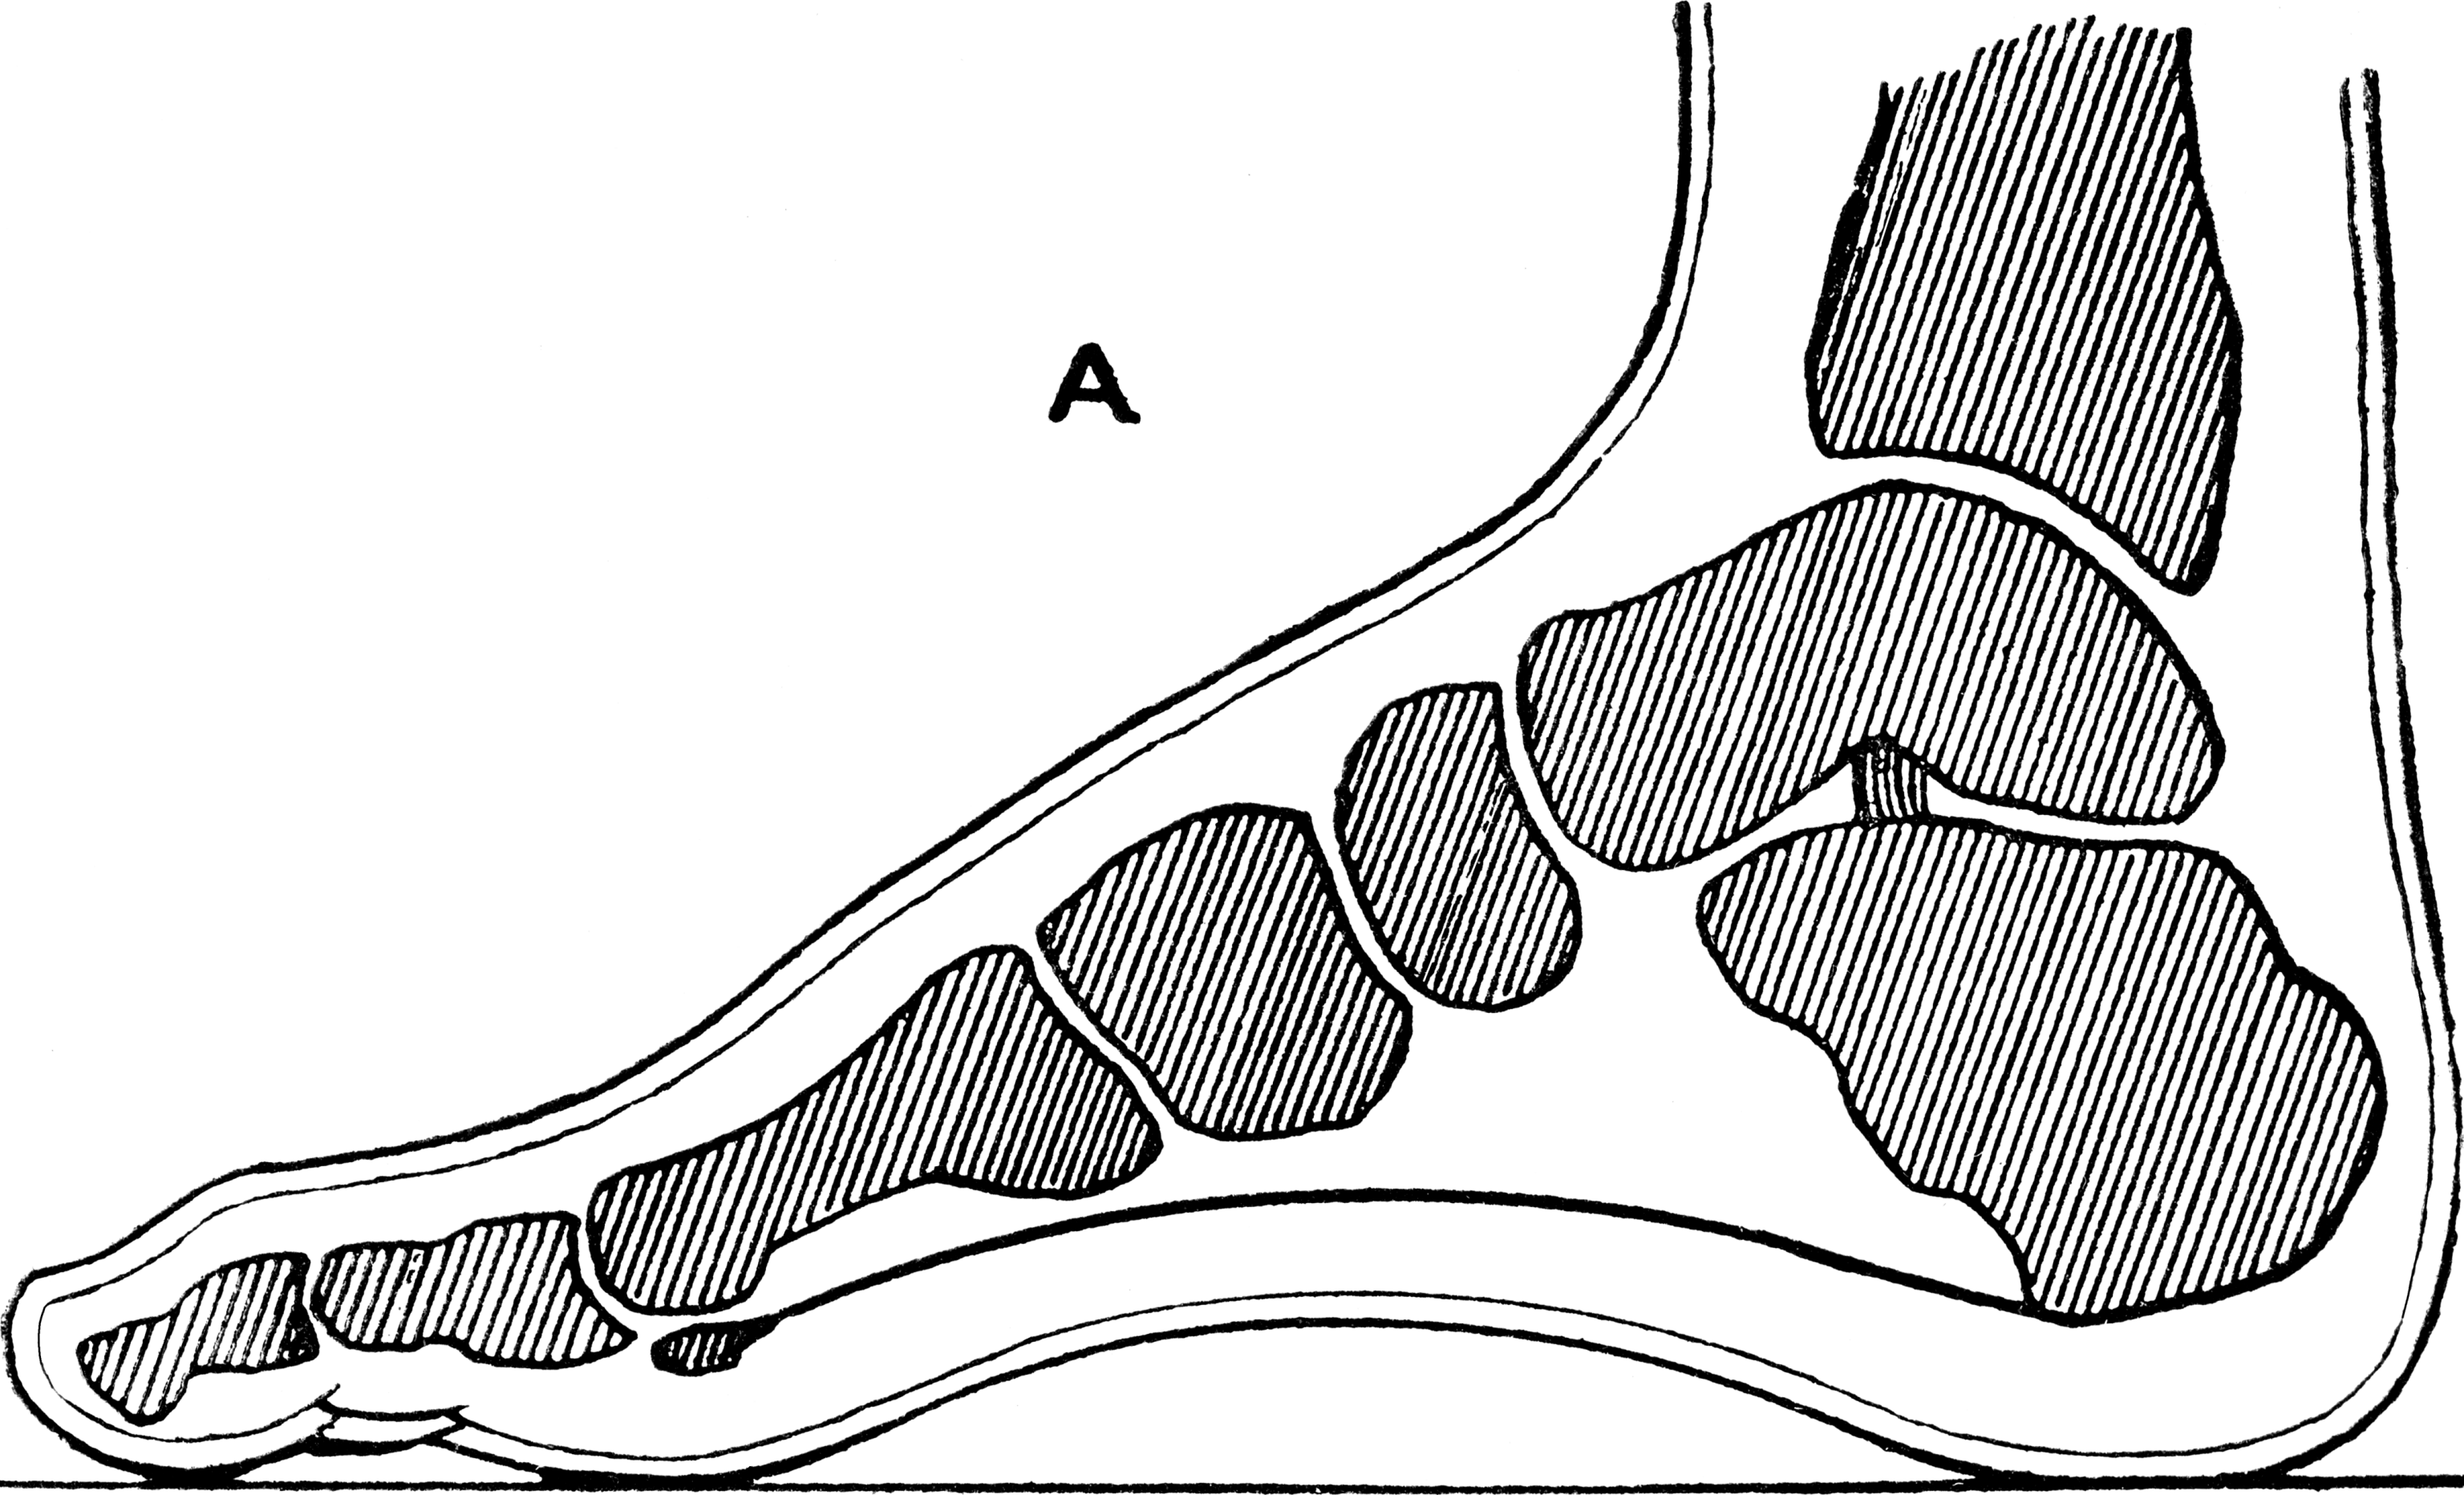 Plantar faciitis isn't the only cause of heel pain.